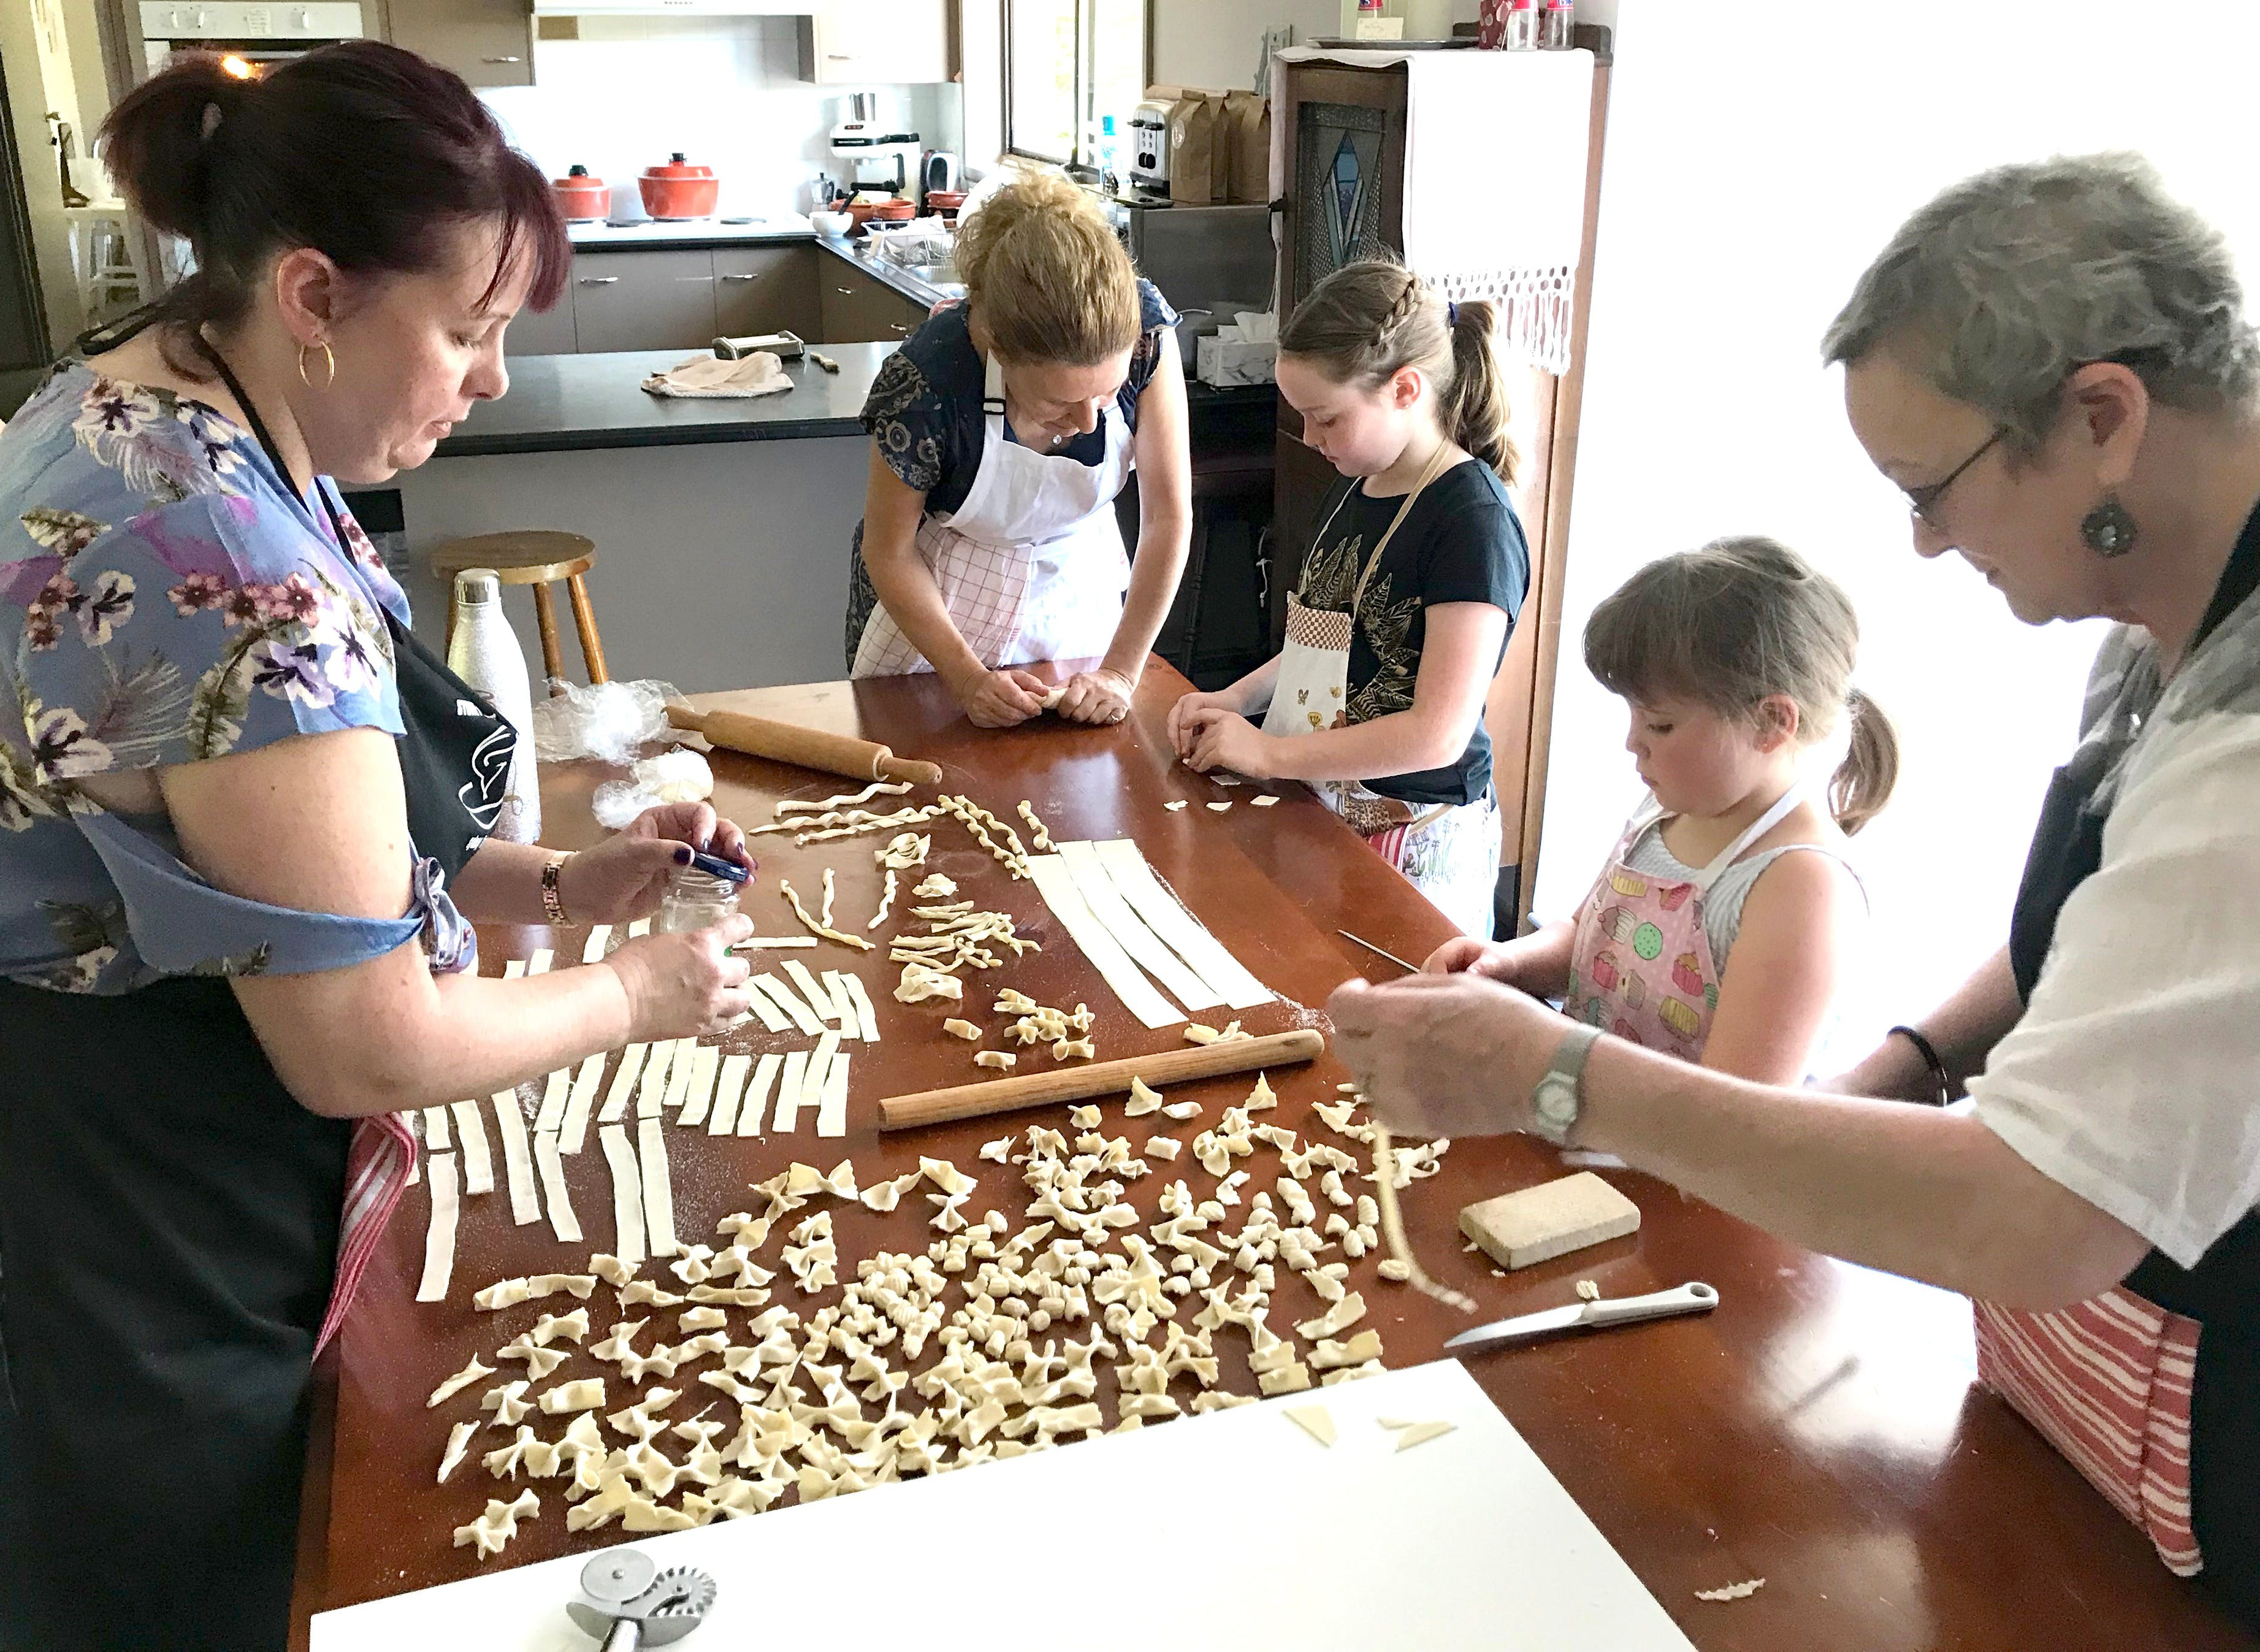 Kids Pasta Making Class - hands on fun at your house - Accommodation BNB